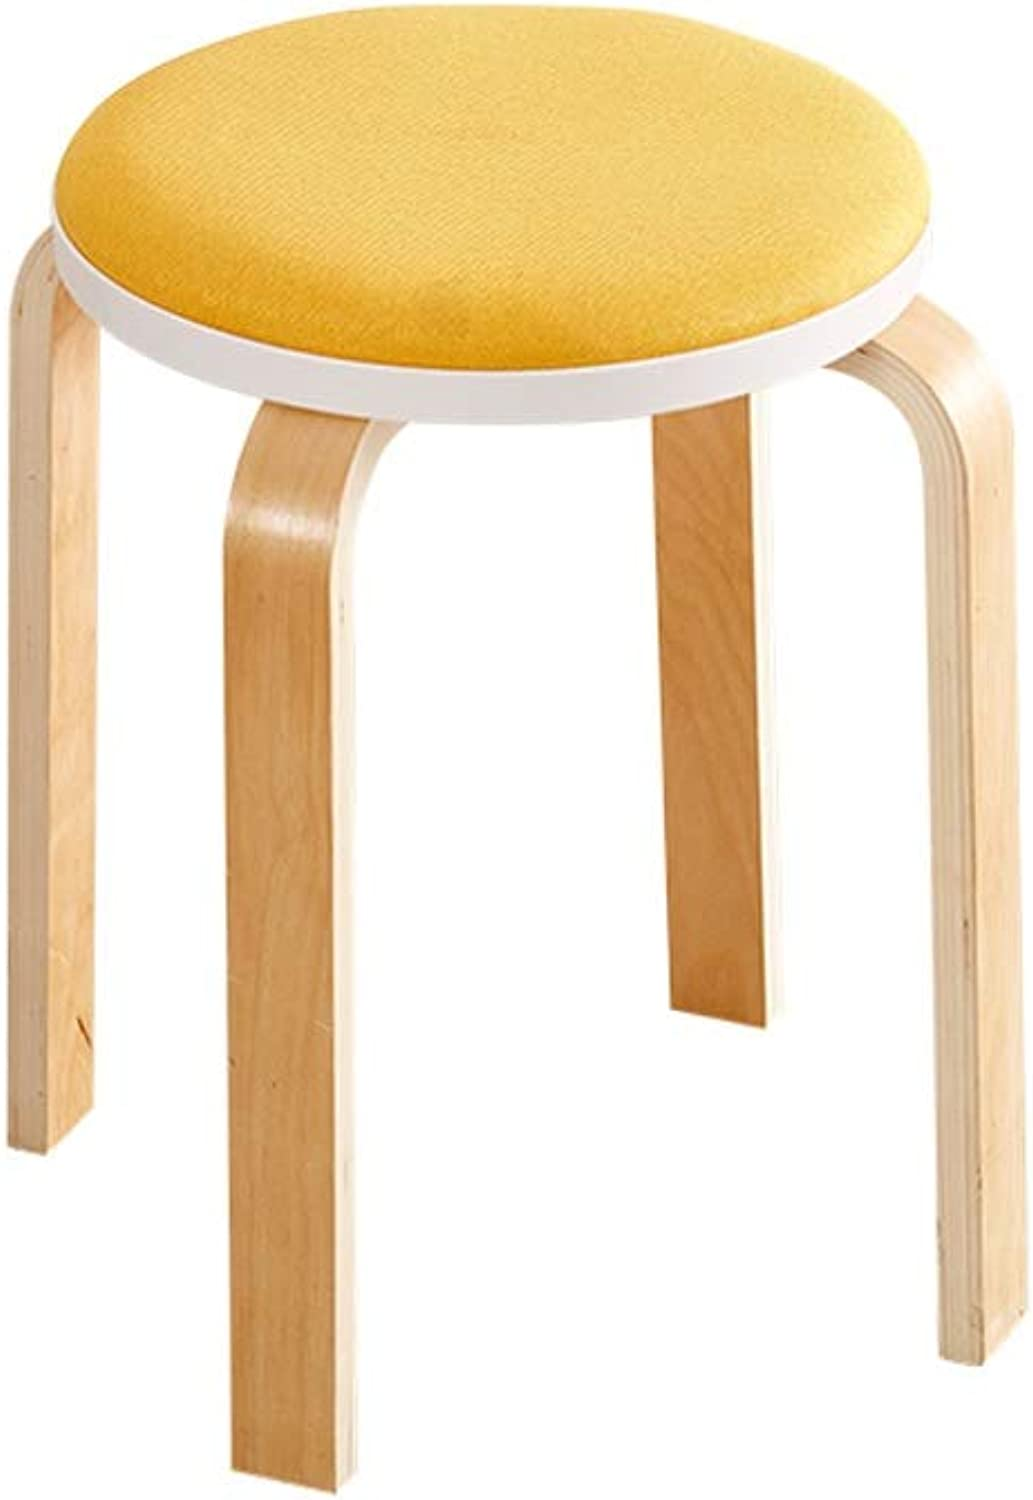 LRZS-Furniture Stool Fashion Creative Dining Table Stool Solid Wood Small Chair Living Room Fabric Bench Adult Home Modern Minimalist Stool (color   Yellow)